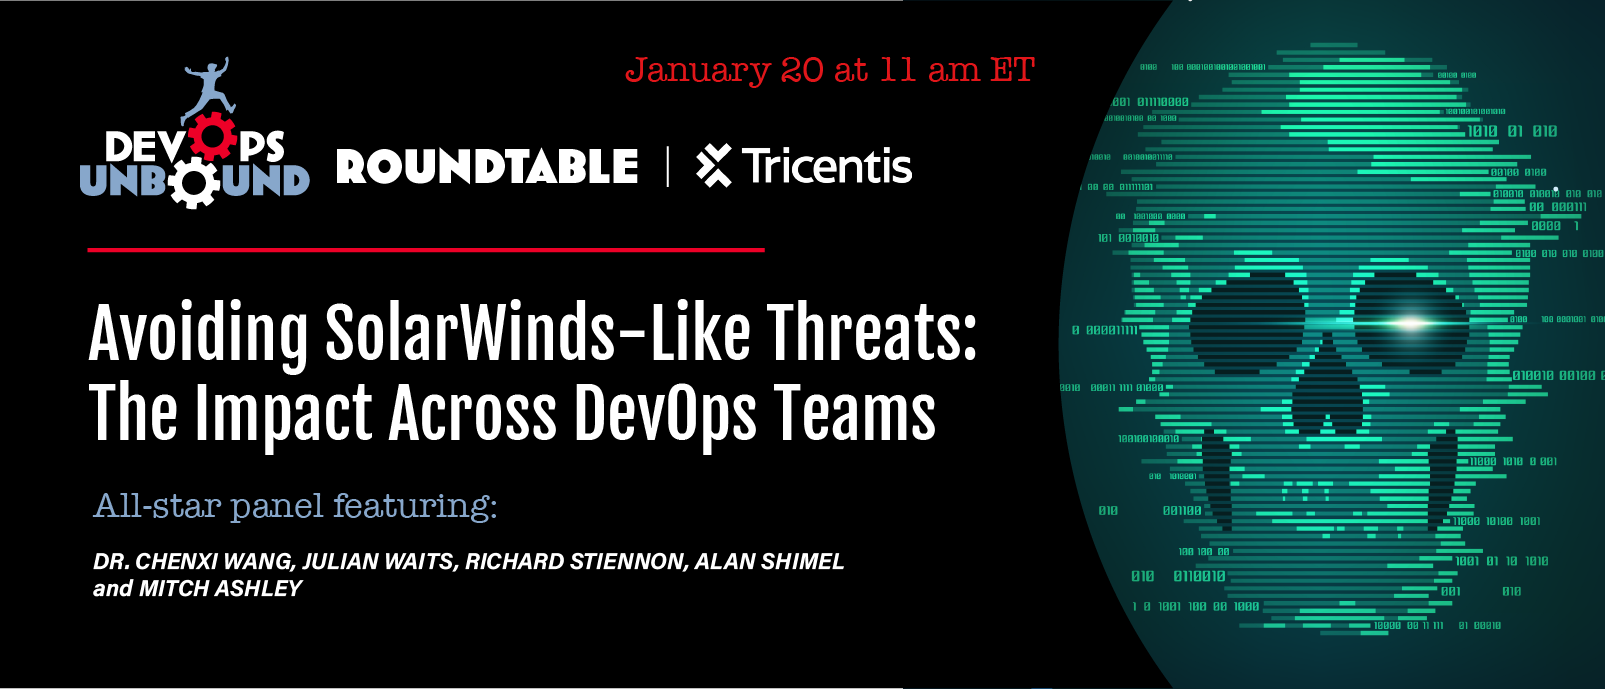 Avoiding SolarWinds-Like Threats: The Impact Across DevOps Teams